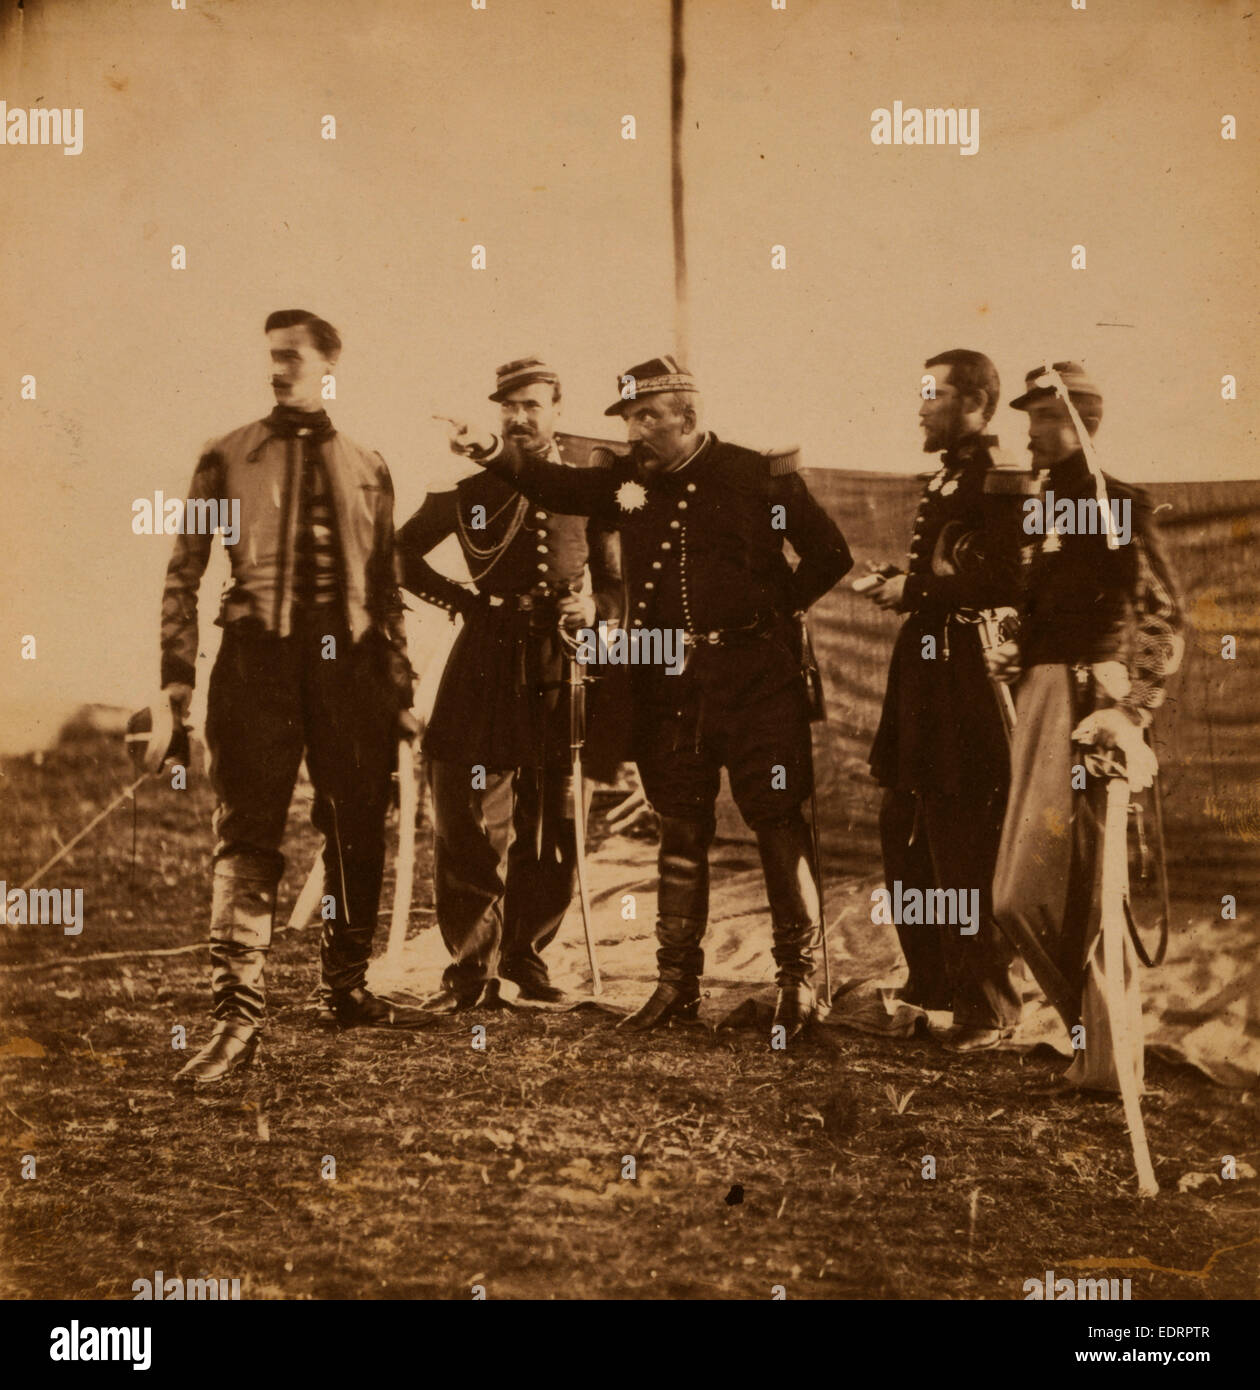 General Bosquet giving orders to his staff, Crimean War, 1853-1856, Roger Fenton historic war campaign photo - Stock Image